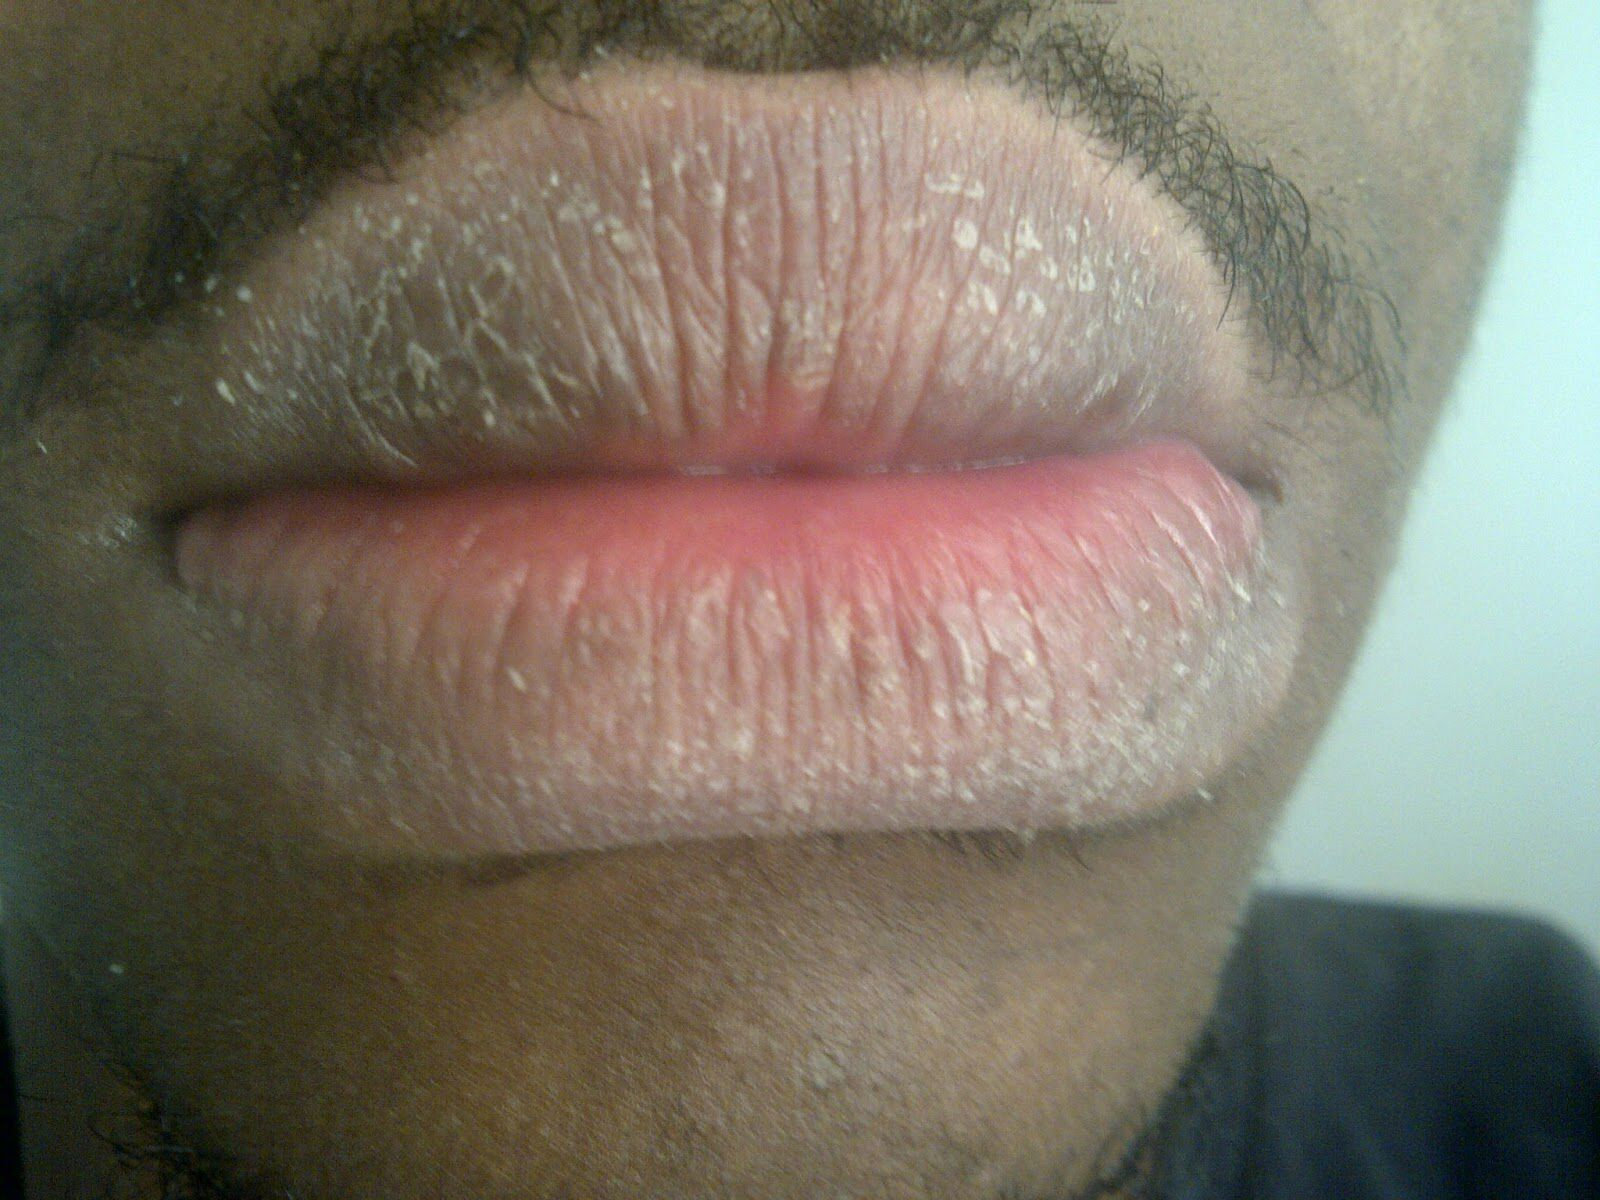 15 best images about lips on pinterest | cas, cold sore and note, Skeleton